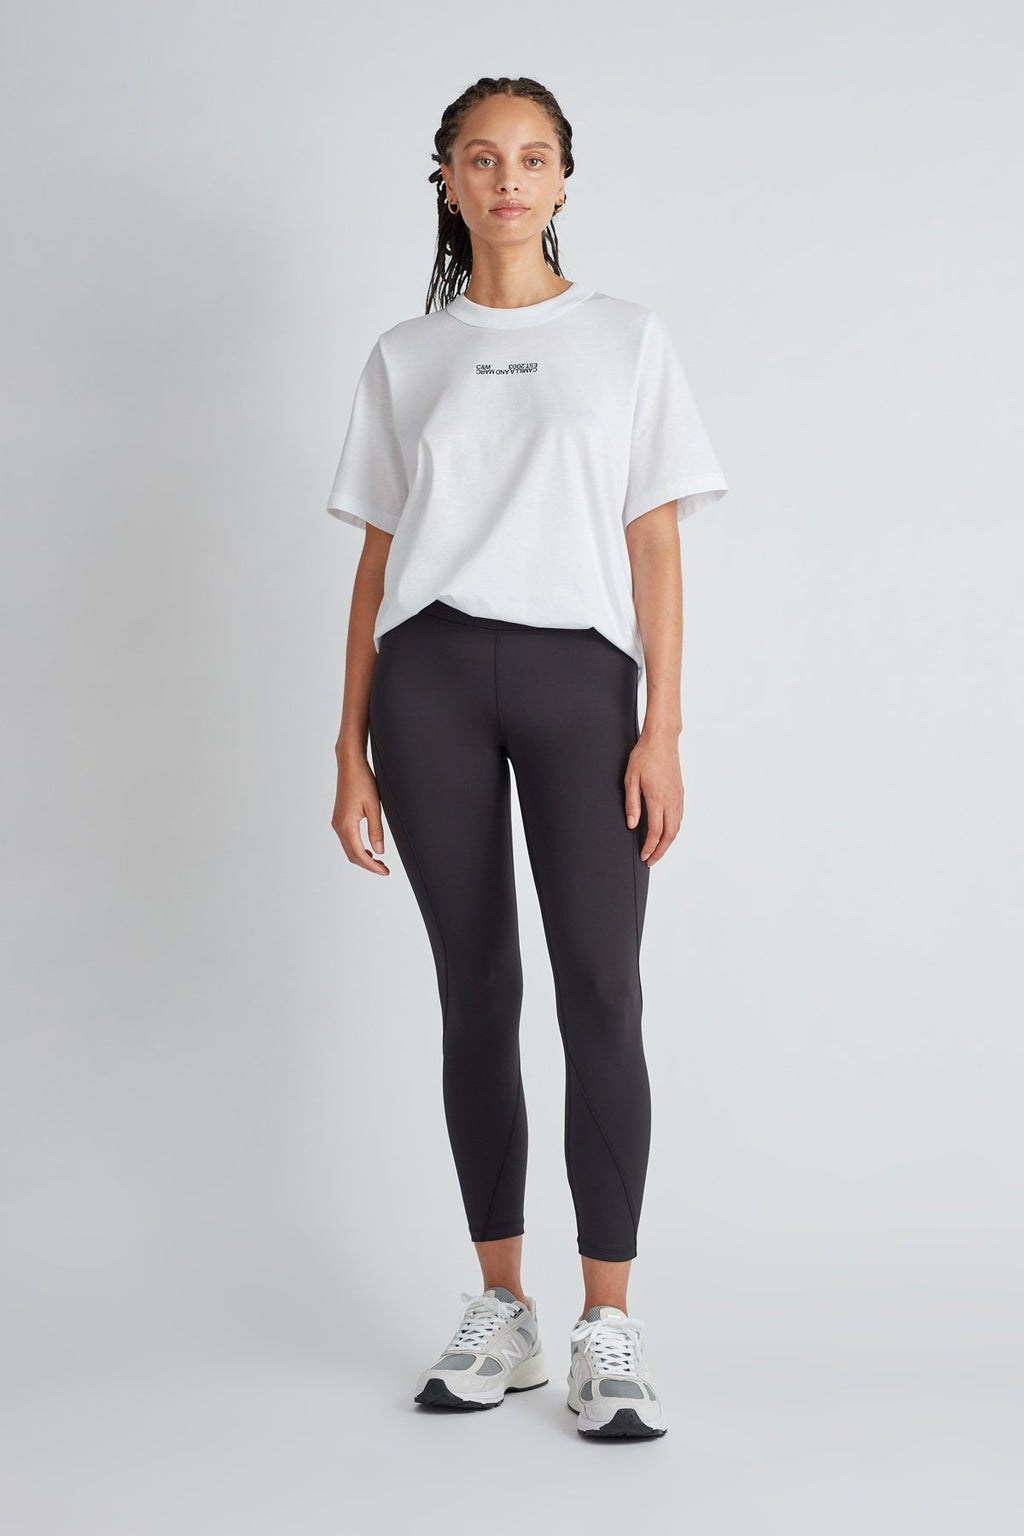 Camilla & Marc The George Tee 2.0 in White